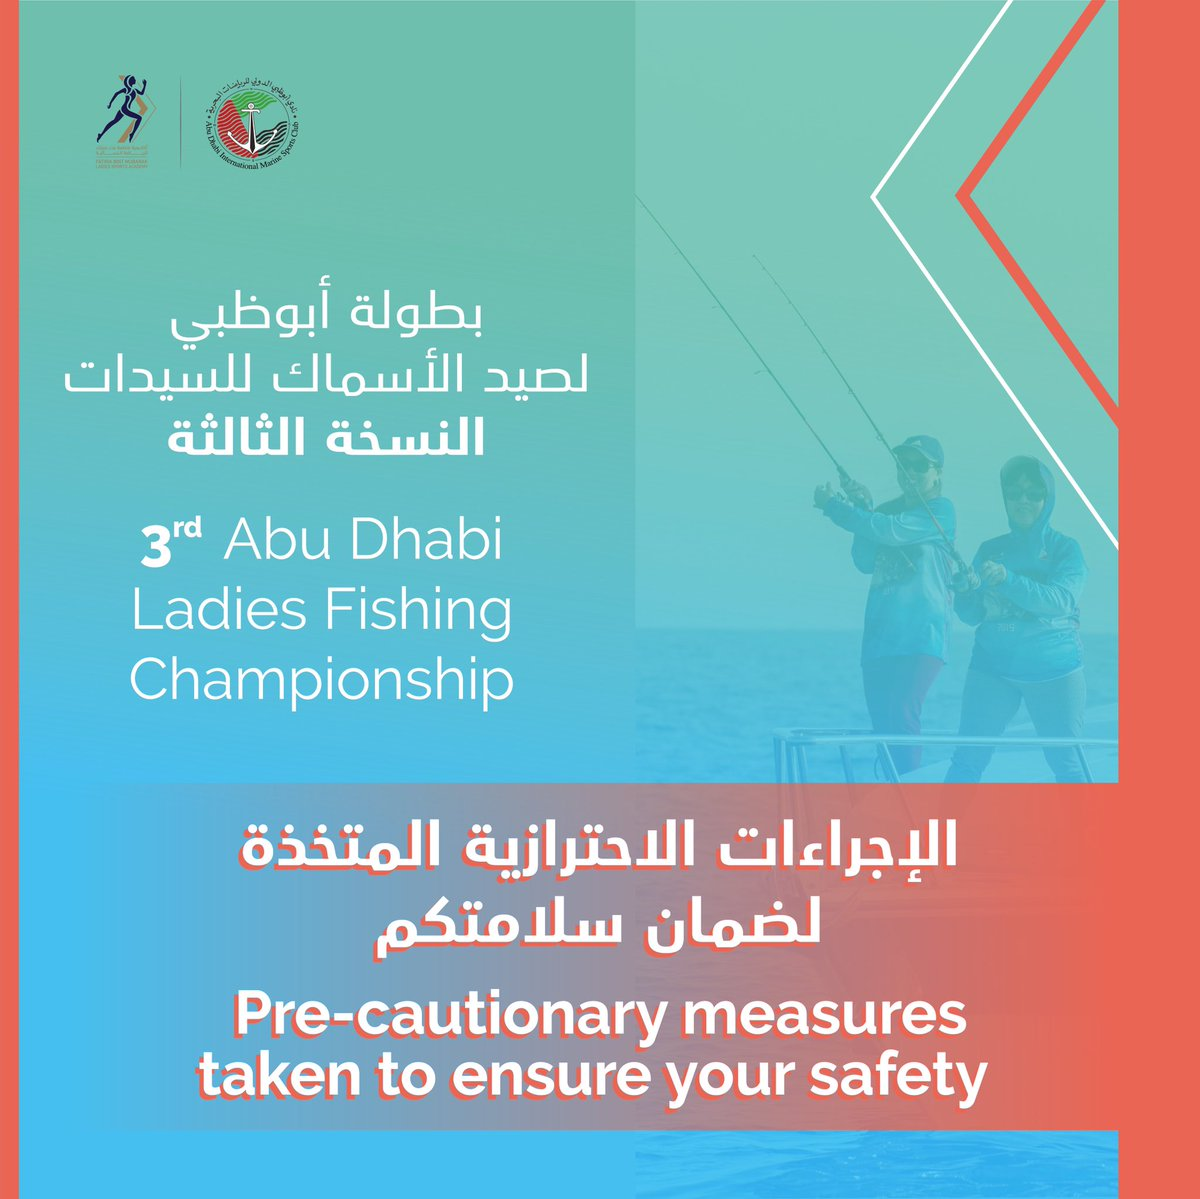 Your safety is our priority! We are taking extra pre-cautionary measures at our 3rd Abu Dhabi Ladies Fishing Championship to ensure your safety. Find out what they are below👇🏼  #MovingForward #UAESports #FBMA #AbuDhabi #InAbuDhabi #ADFBMA #fishing https://t.co/PYnwLPc8uN